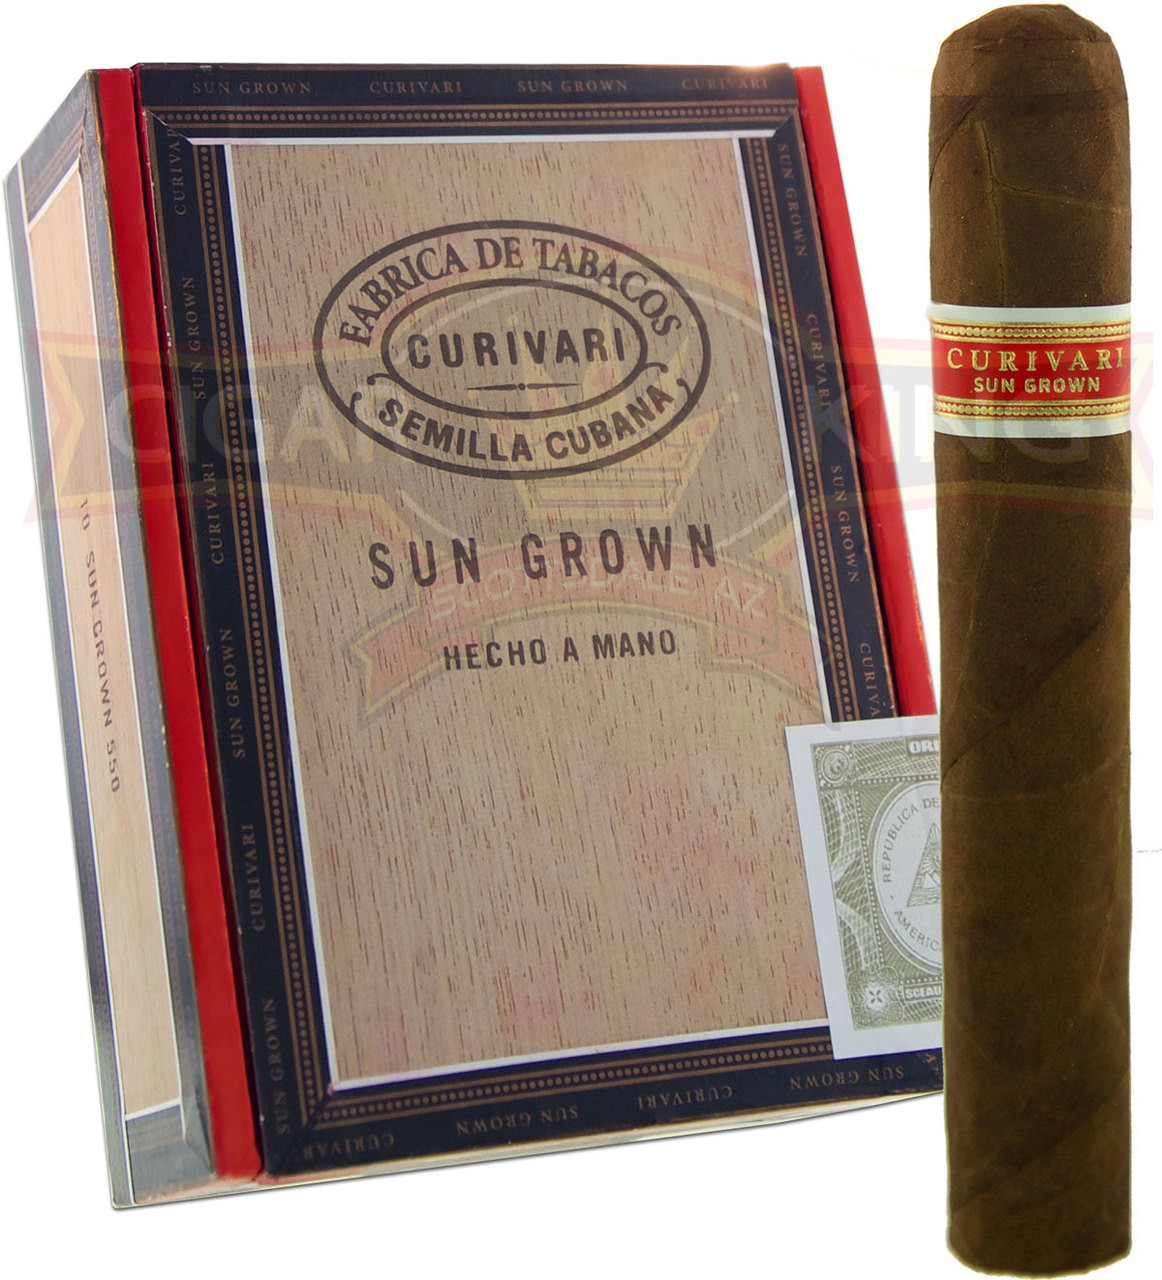 Curivari Sun Grown 550 (5x50 / Box of 10) + FREE SHIPPING ON YOUR ENTIRE ORDER!